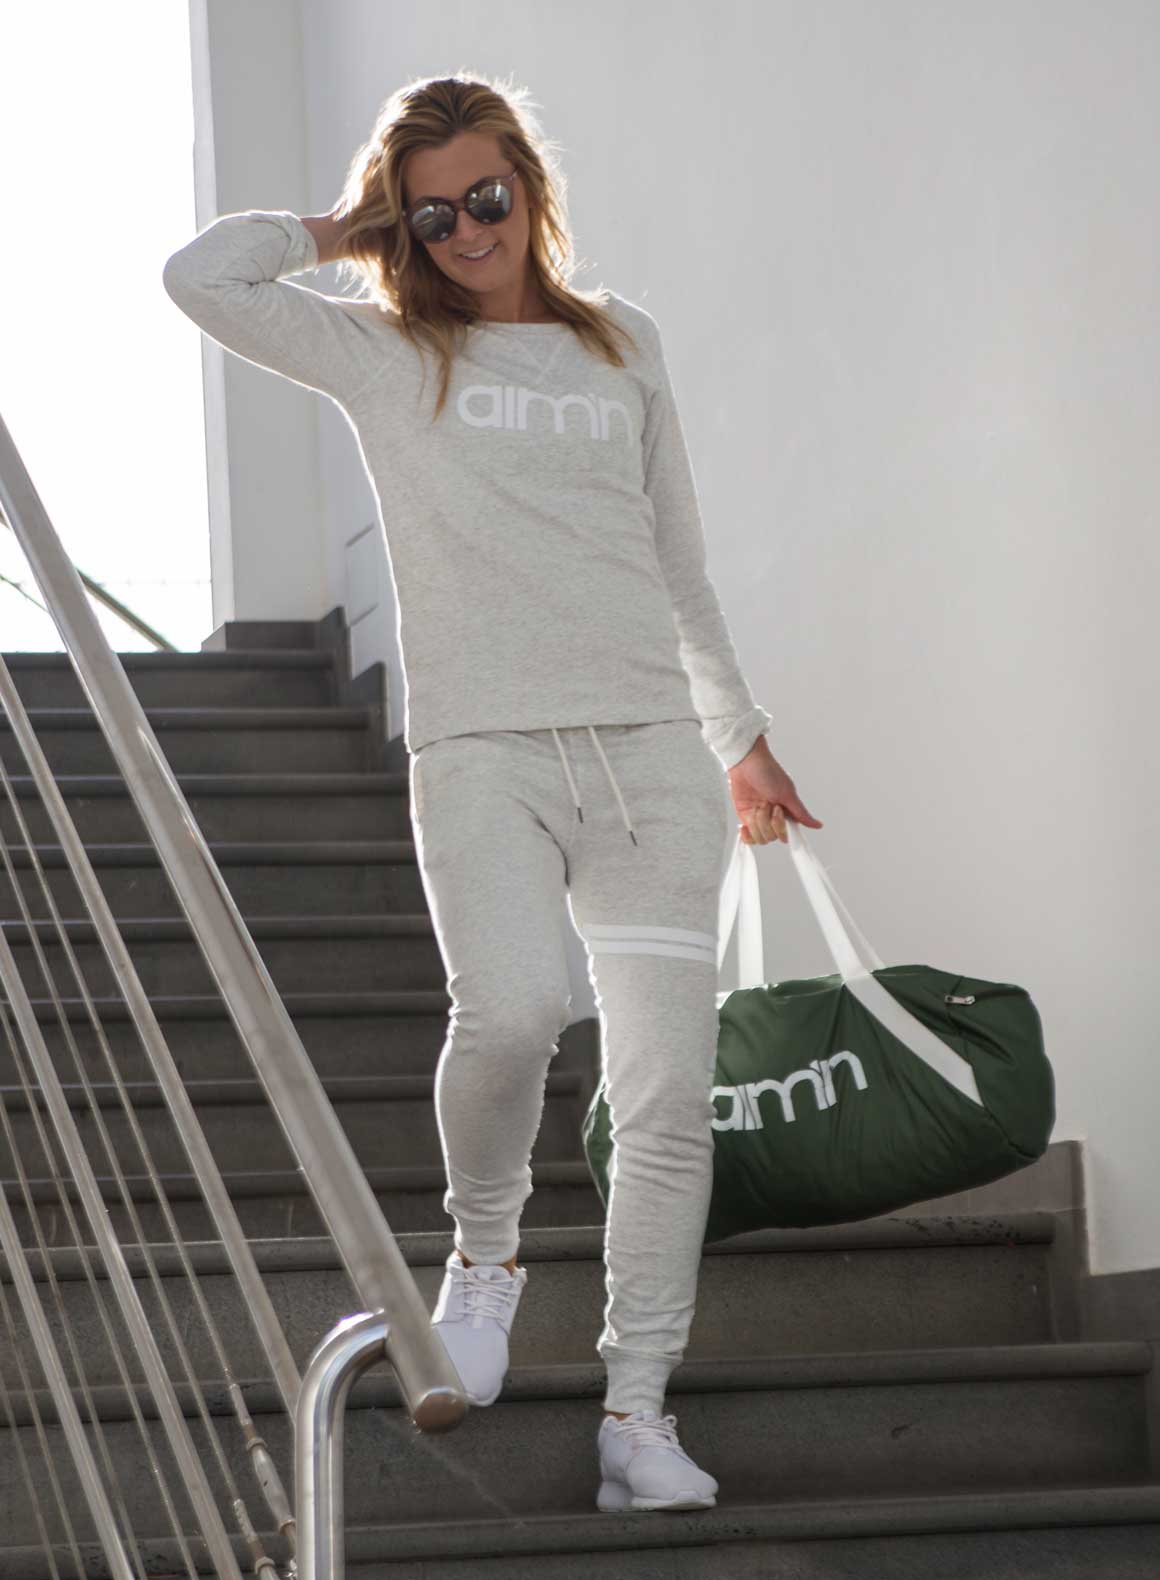 Aim'n Grey Sweatshirt 17050014 and -pants 17010007 c